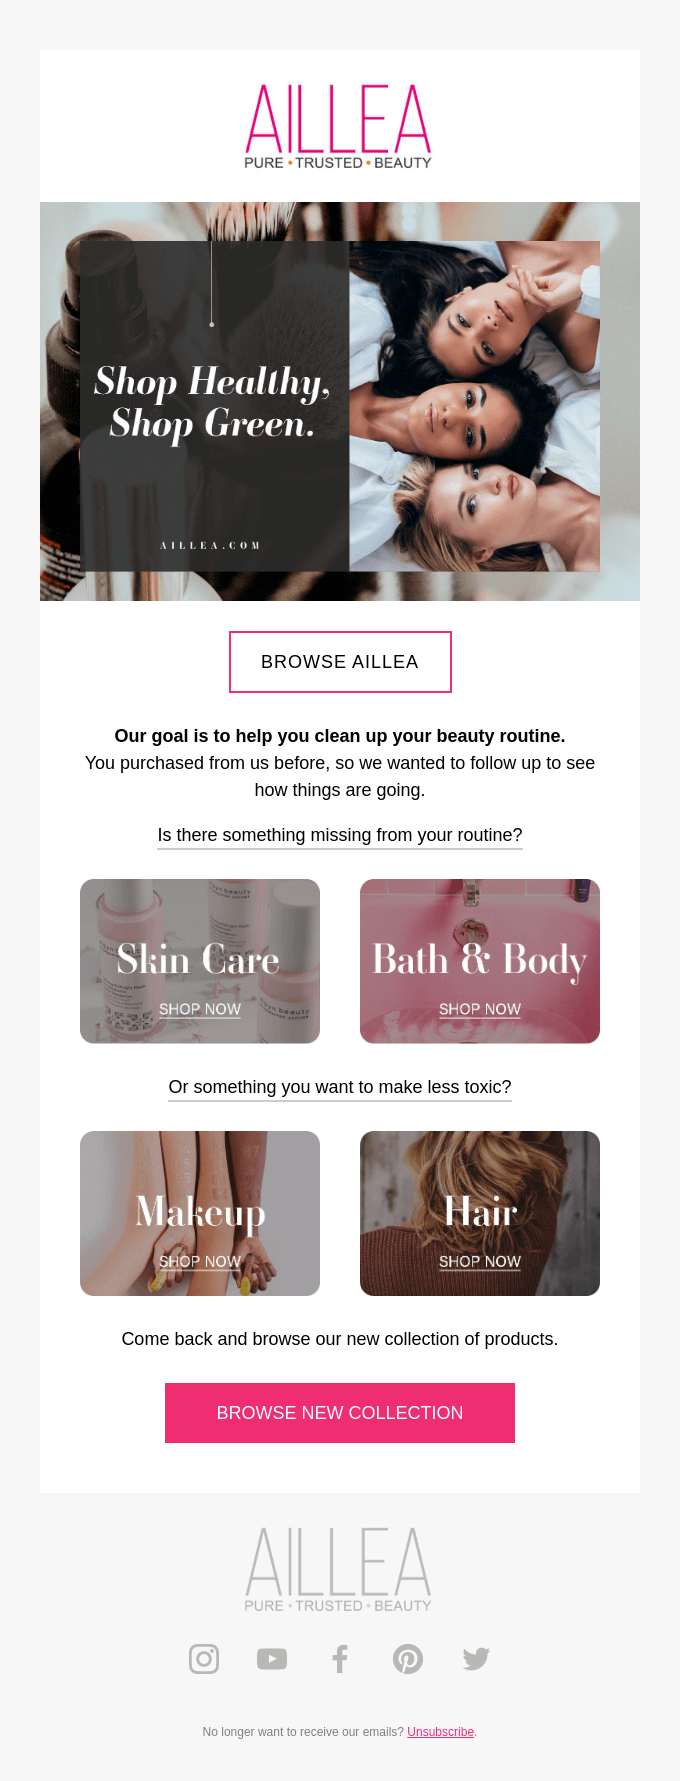 Re-engagement Emails by Aillea